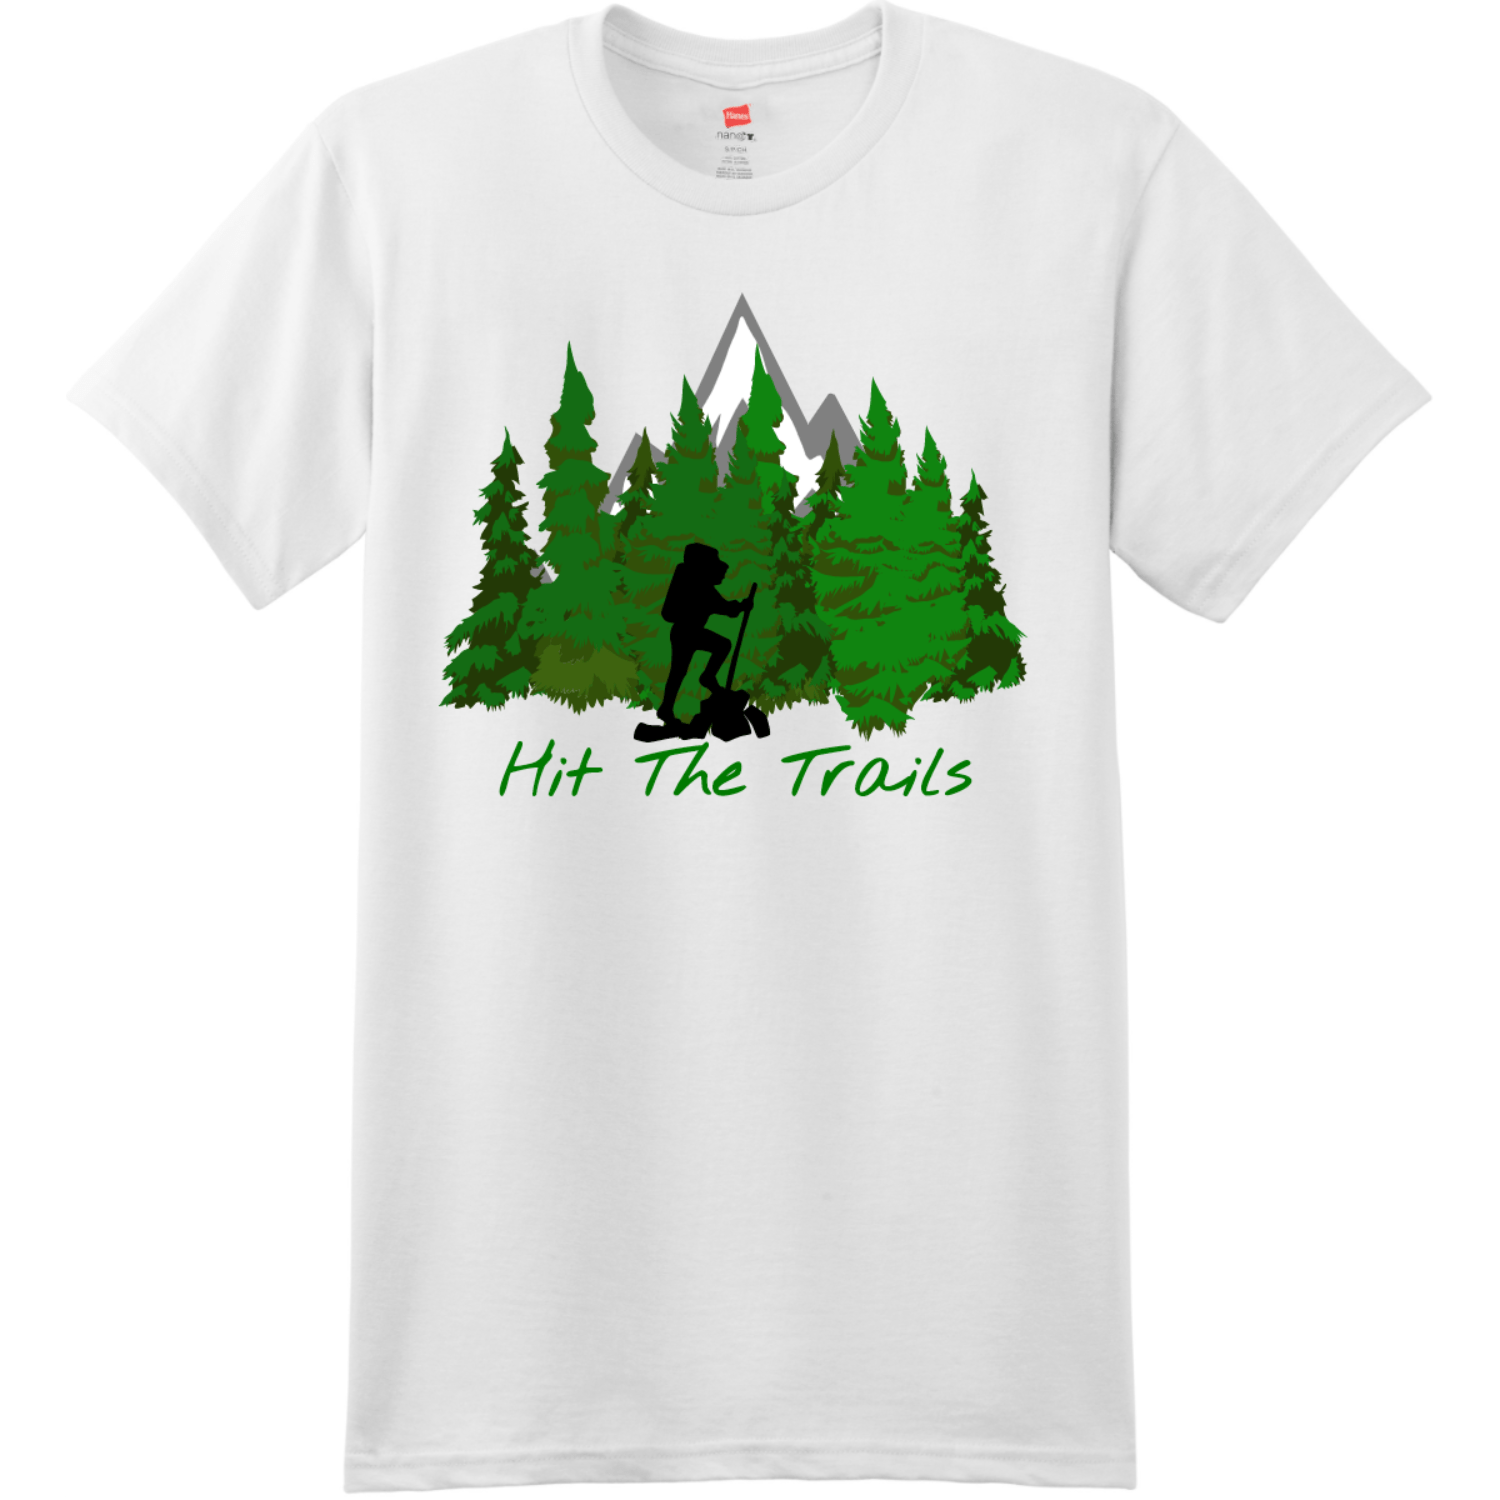 Hit The Trails T-Shirt White Hanes Nano 4980 Ringspun Cotton T Shirt